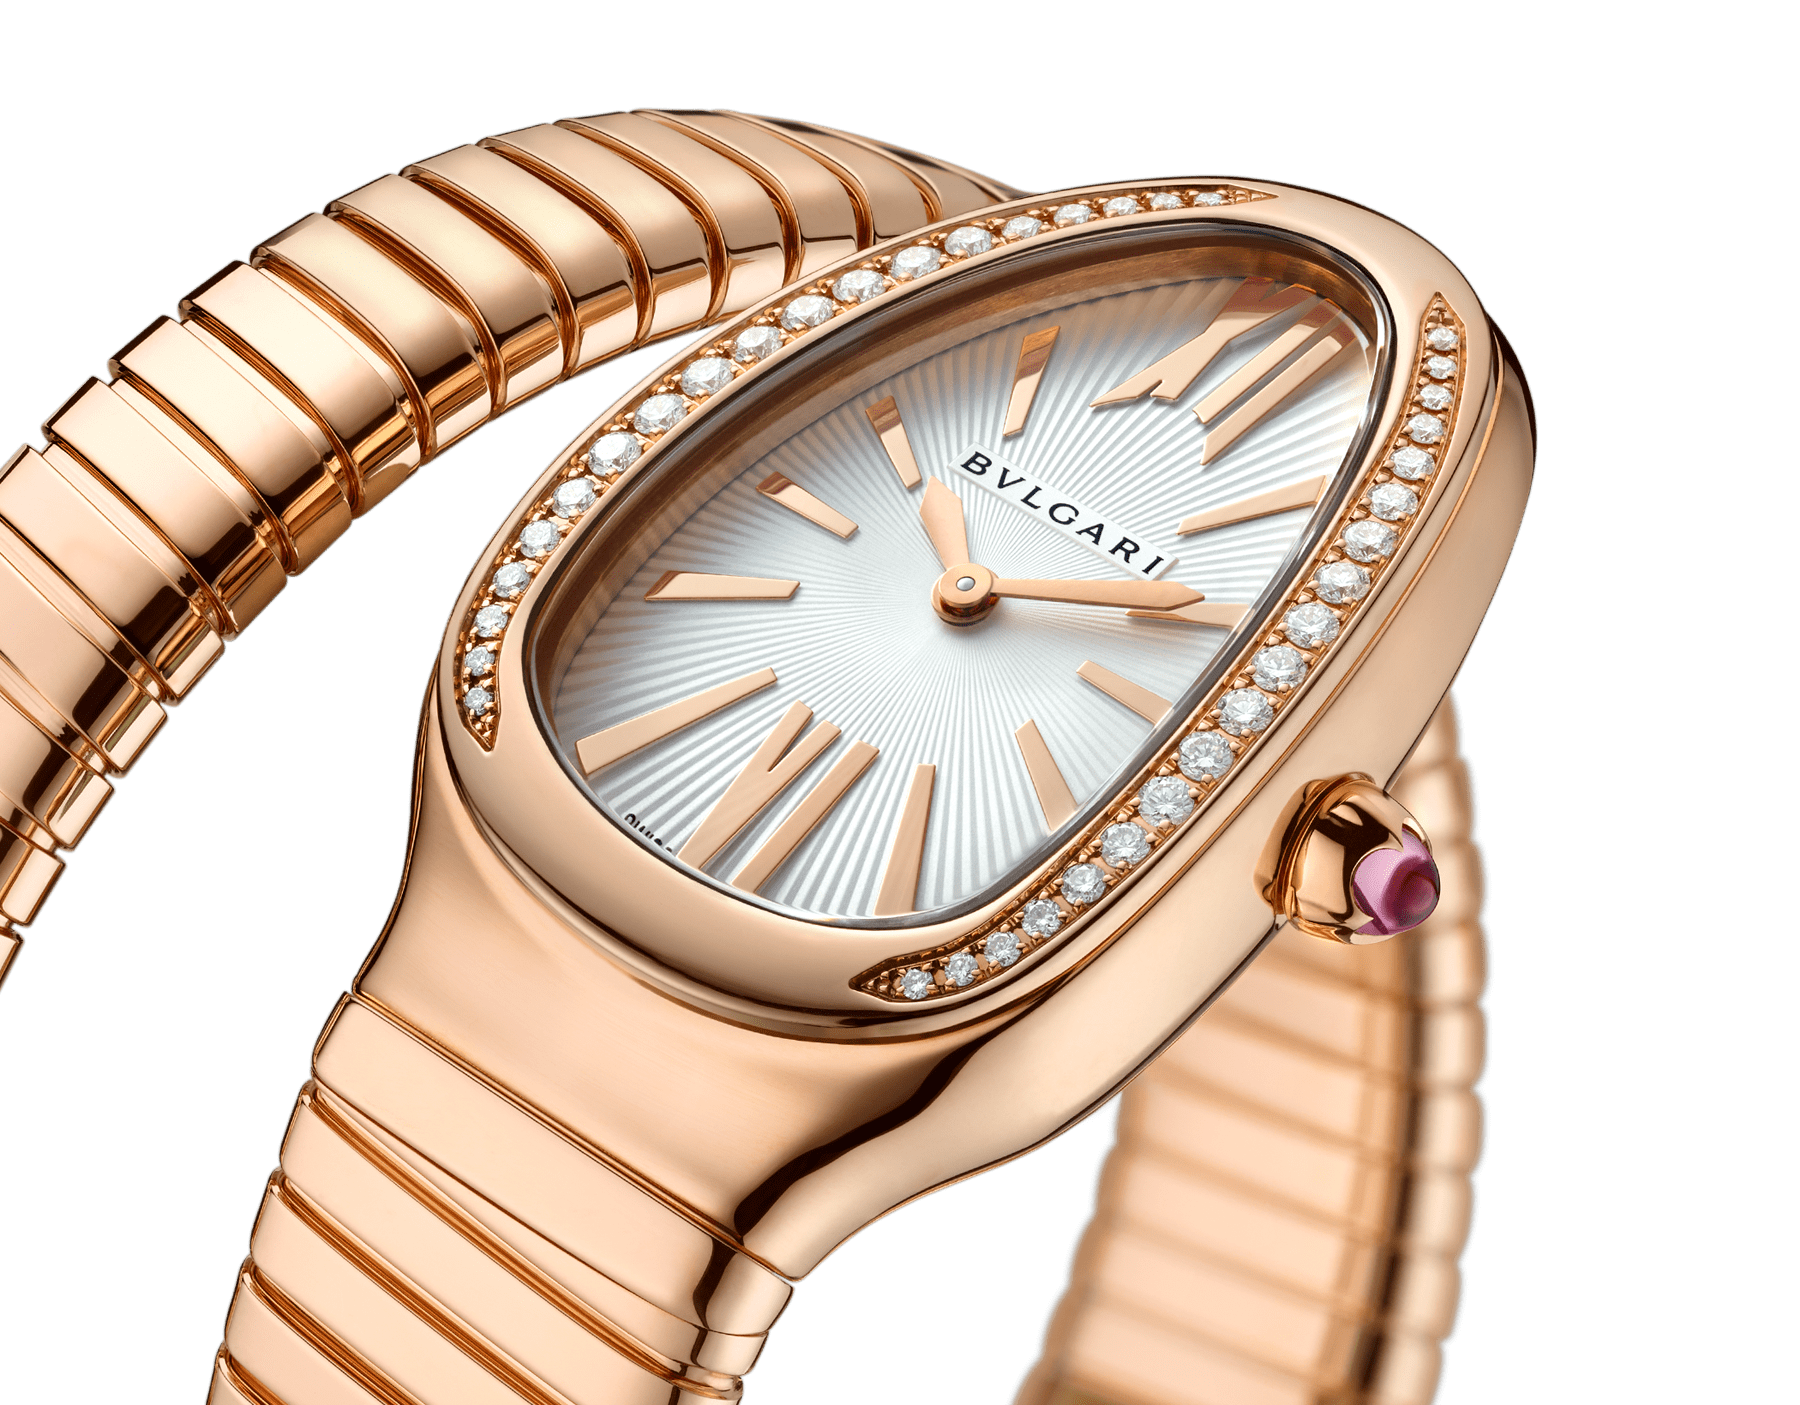 Serpenti Tubogas single spiral watch with 18 kt rose gold case set with brilliant-cut diamonds, silver opaline dial and 18 kt rose gold bracelet 103003 image 3